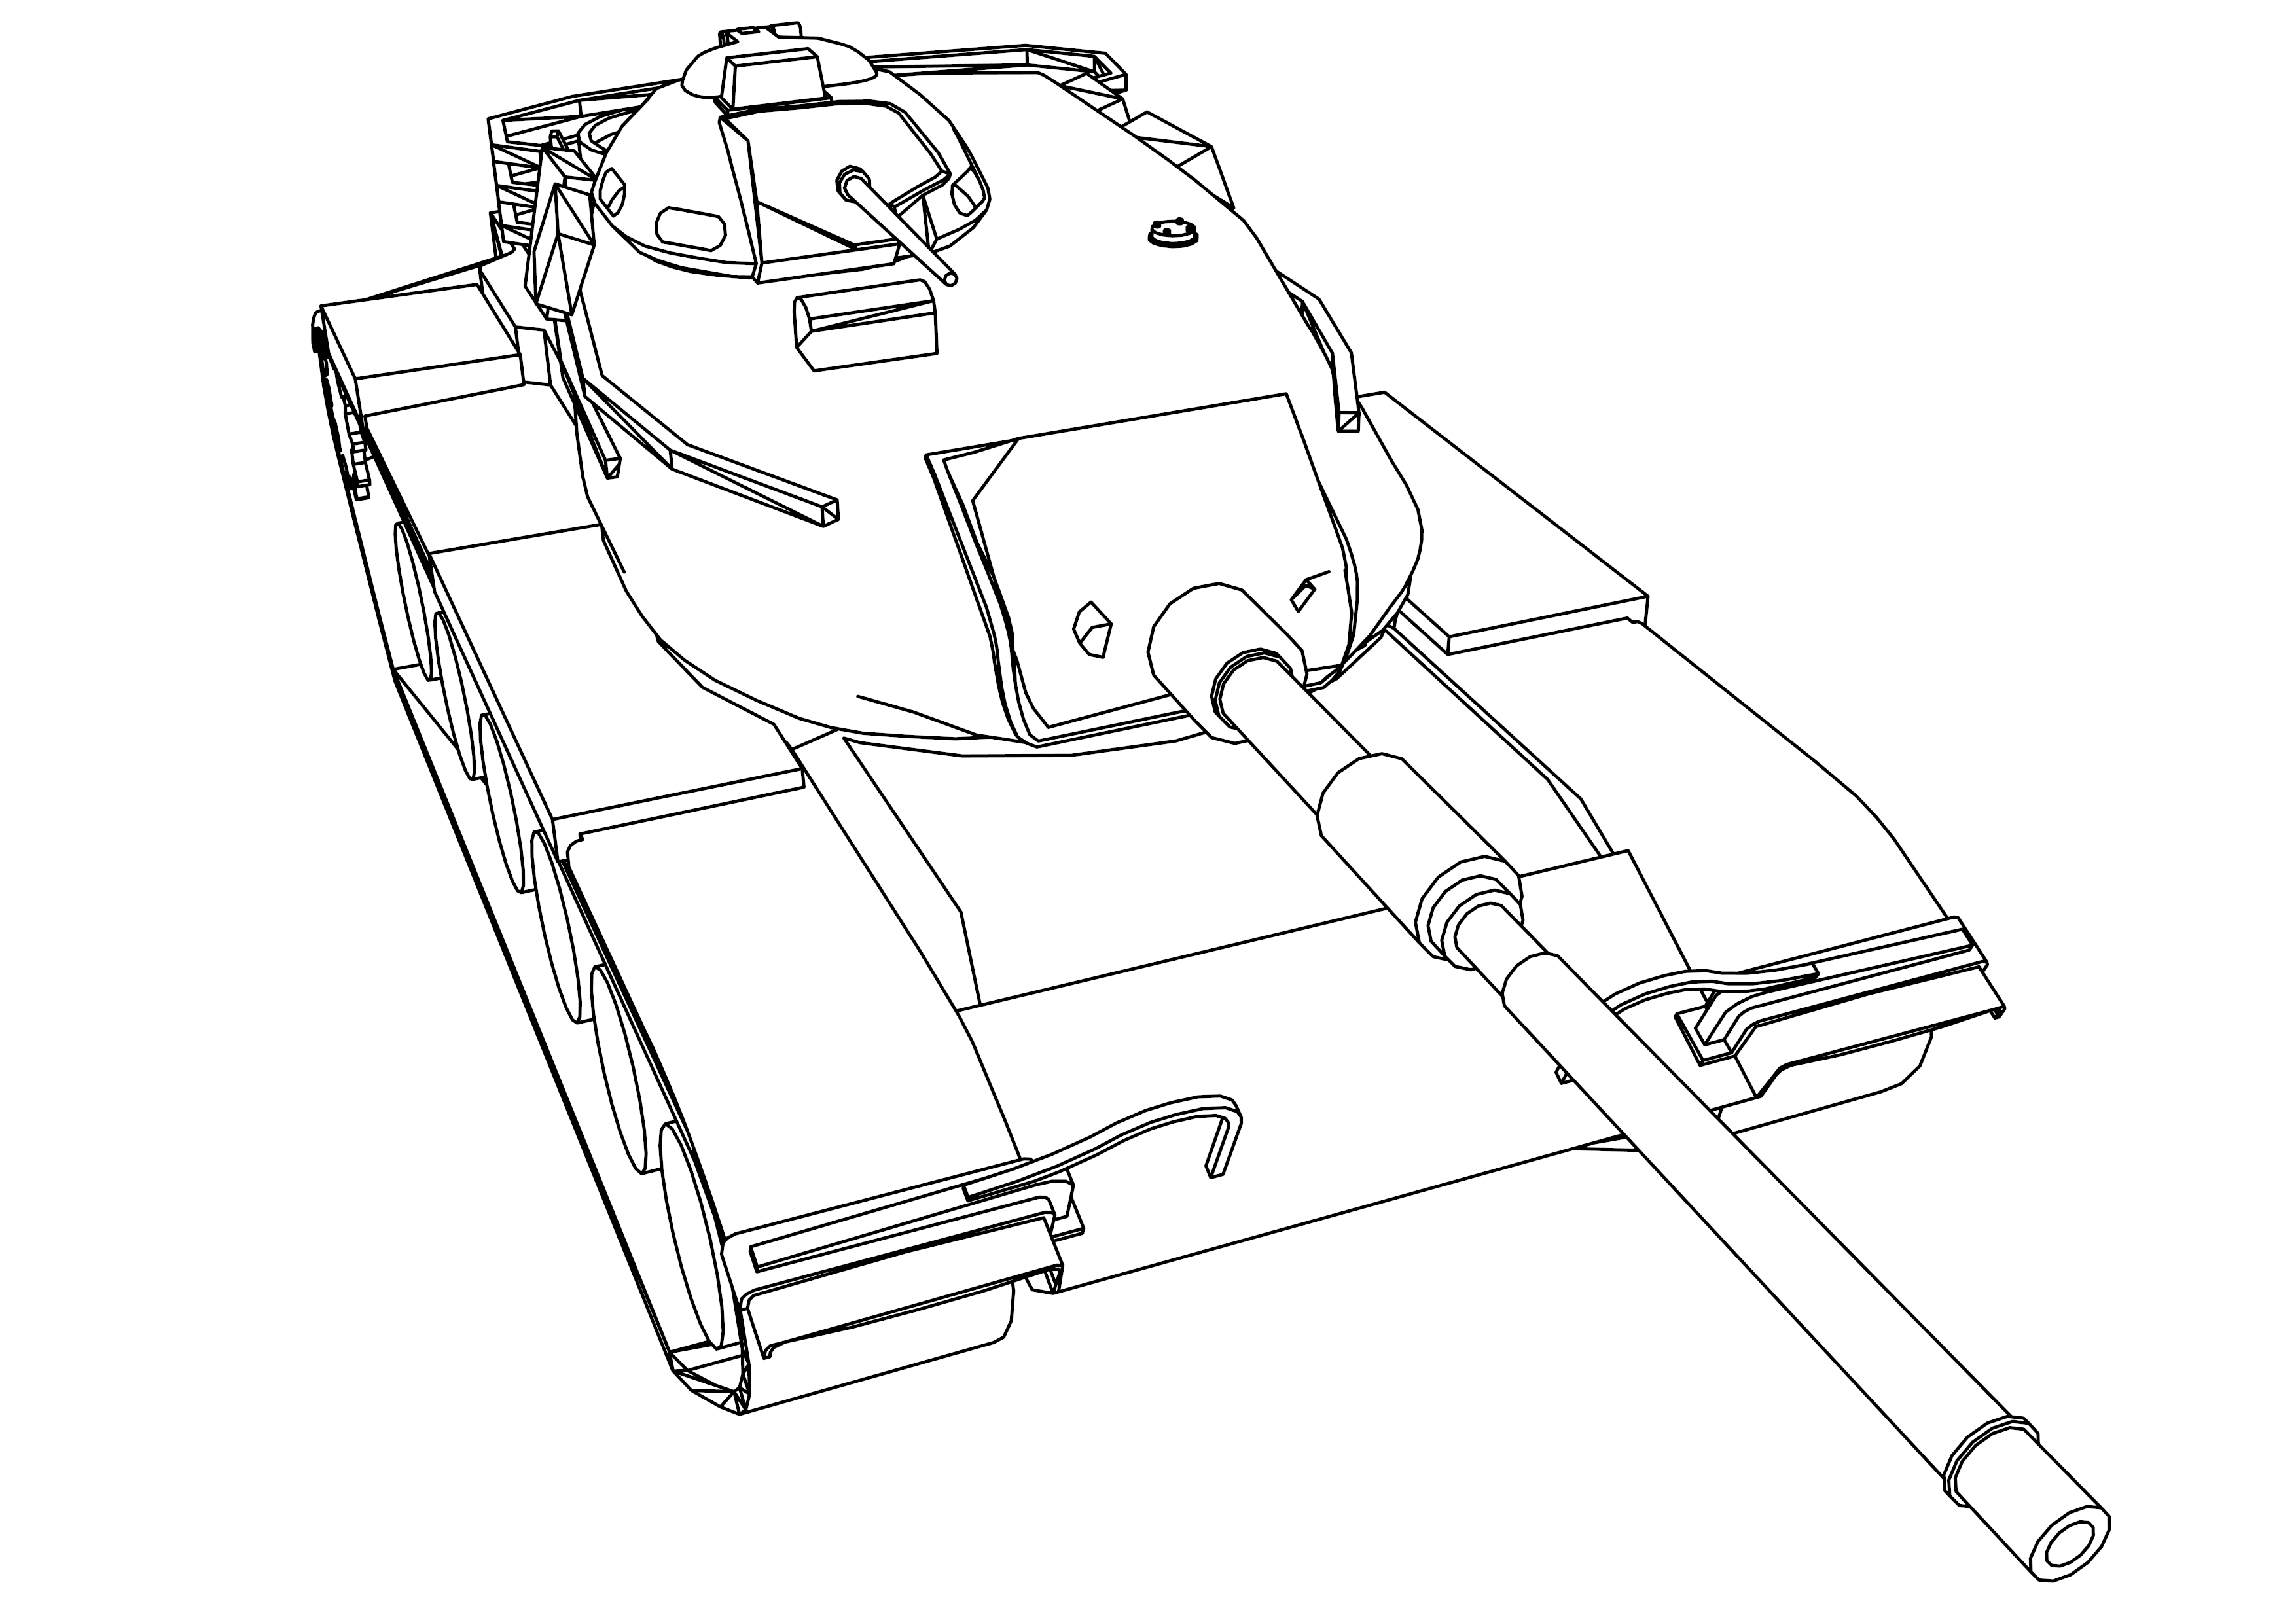 M60 Tank Coloring Page